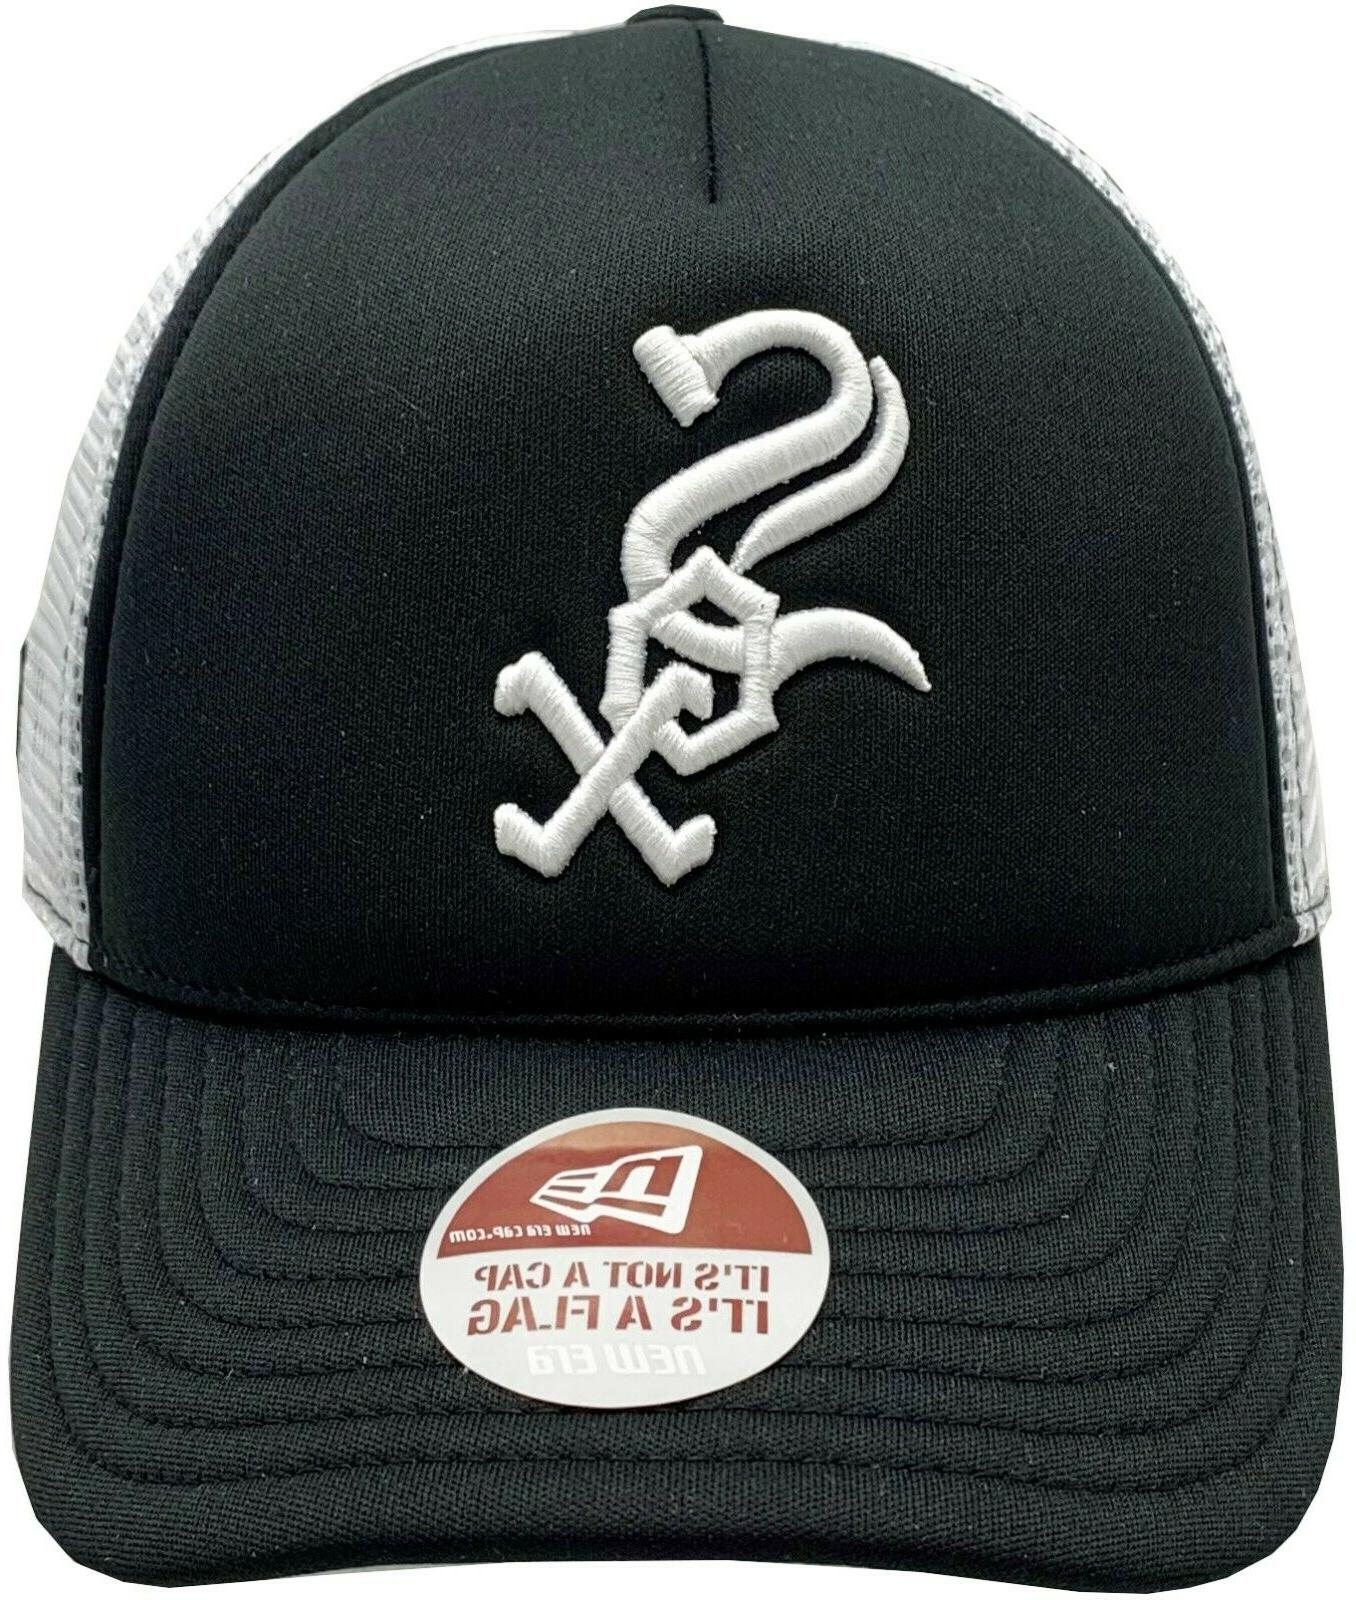 White Sox Trucker Fitted